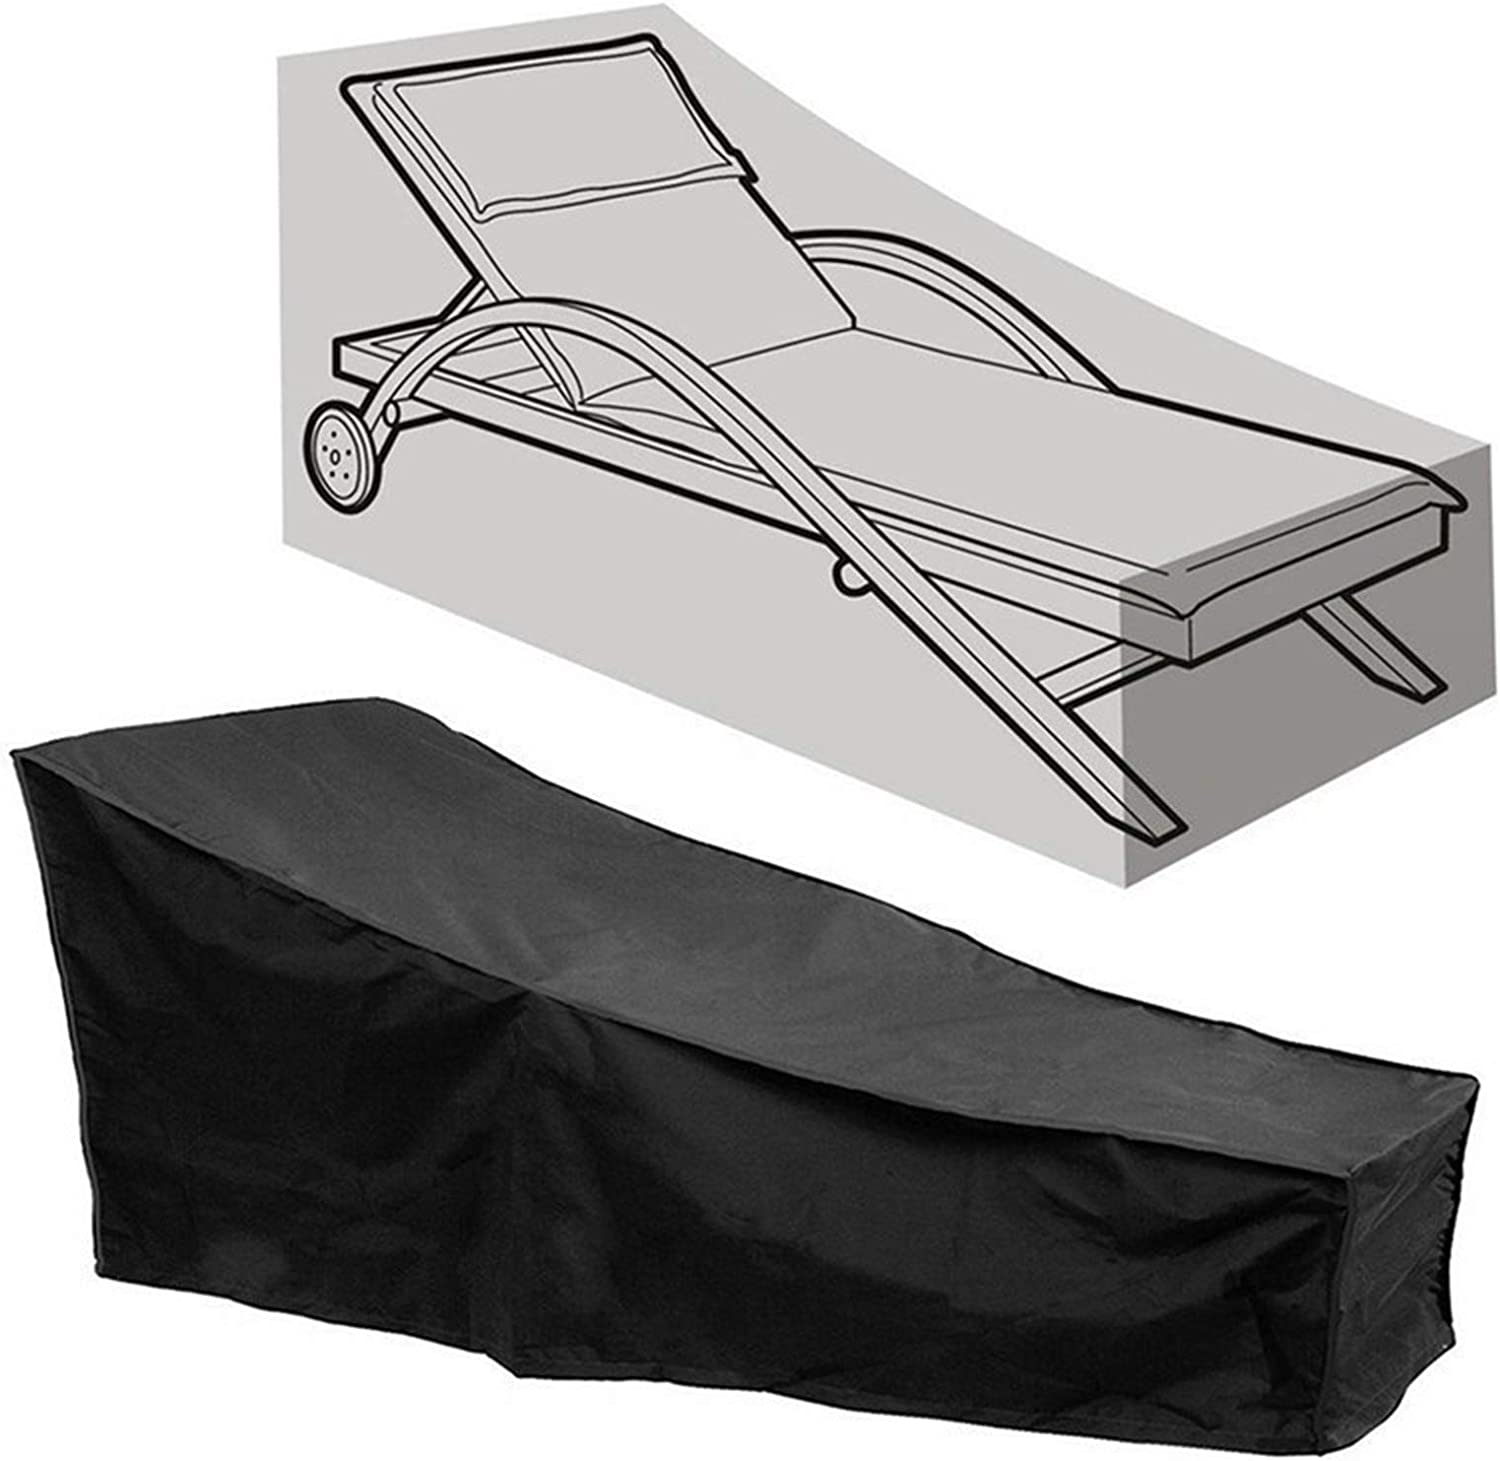 Patio Chaise Lounge Cover Waterproof Sunlounger CoverOutdoor Lounge Chair Cover Anti-UV and Dustproof Lawn Furniture Cover (Black, 1)